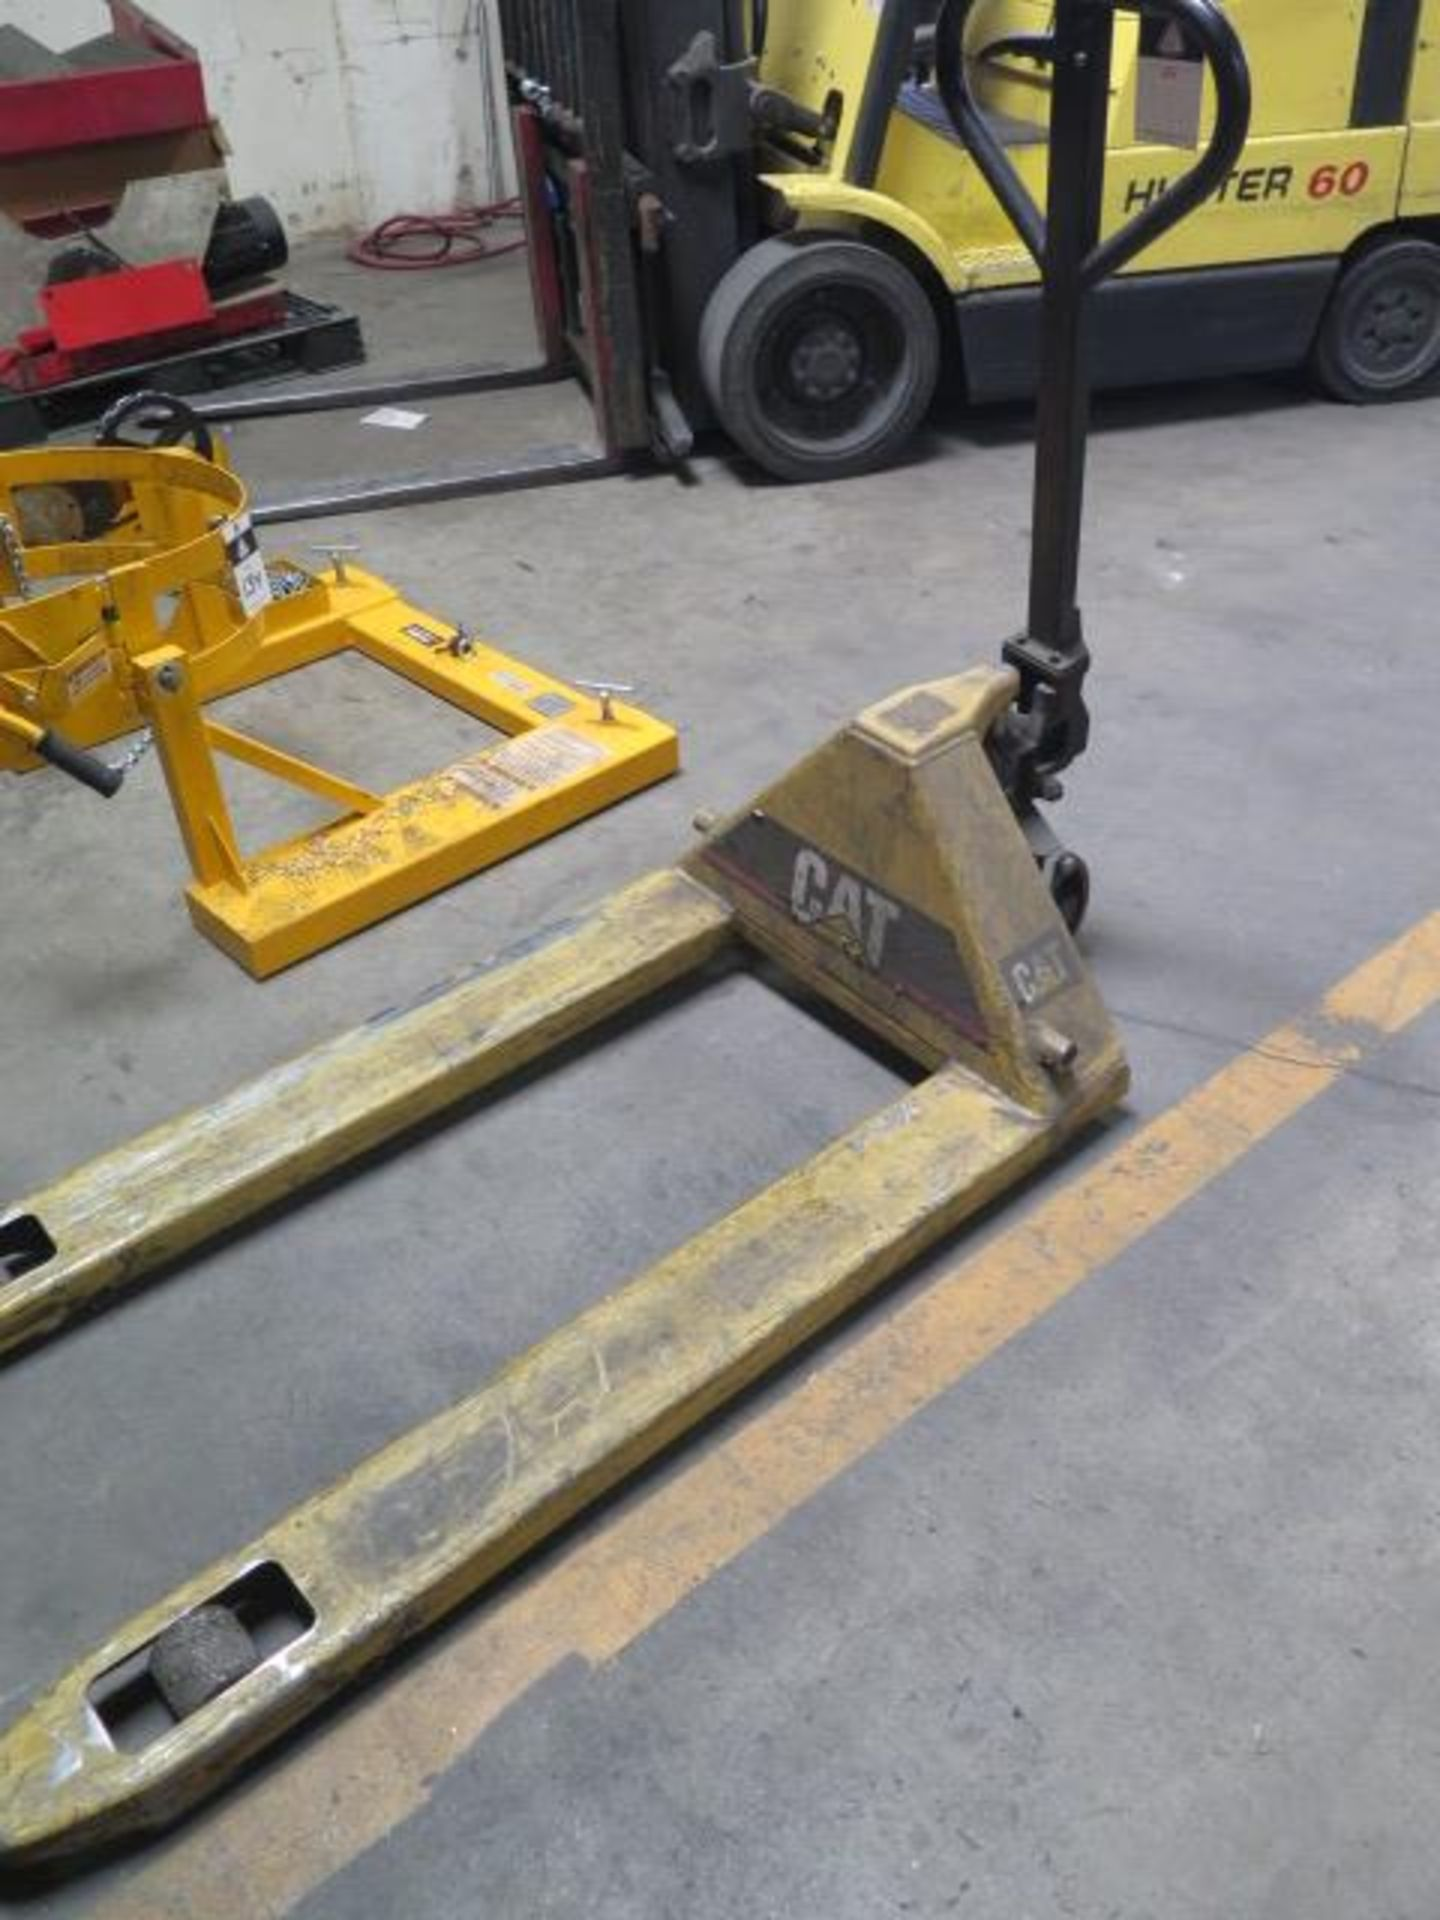 Caterpillar Pallet Jack (SOLD AS-IS - NO WARRANTY) - Image 2 of 3